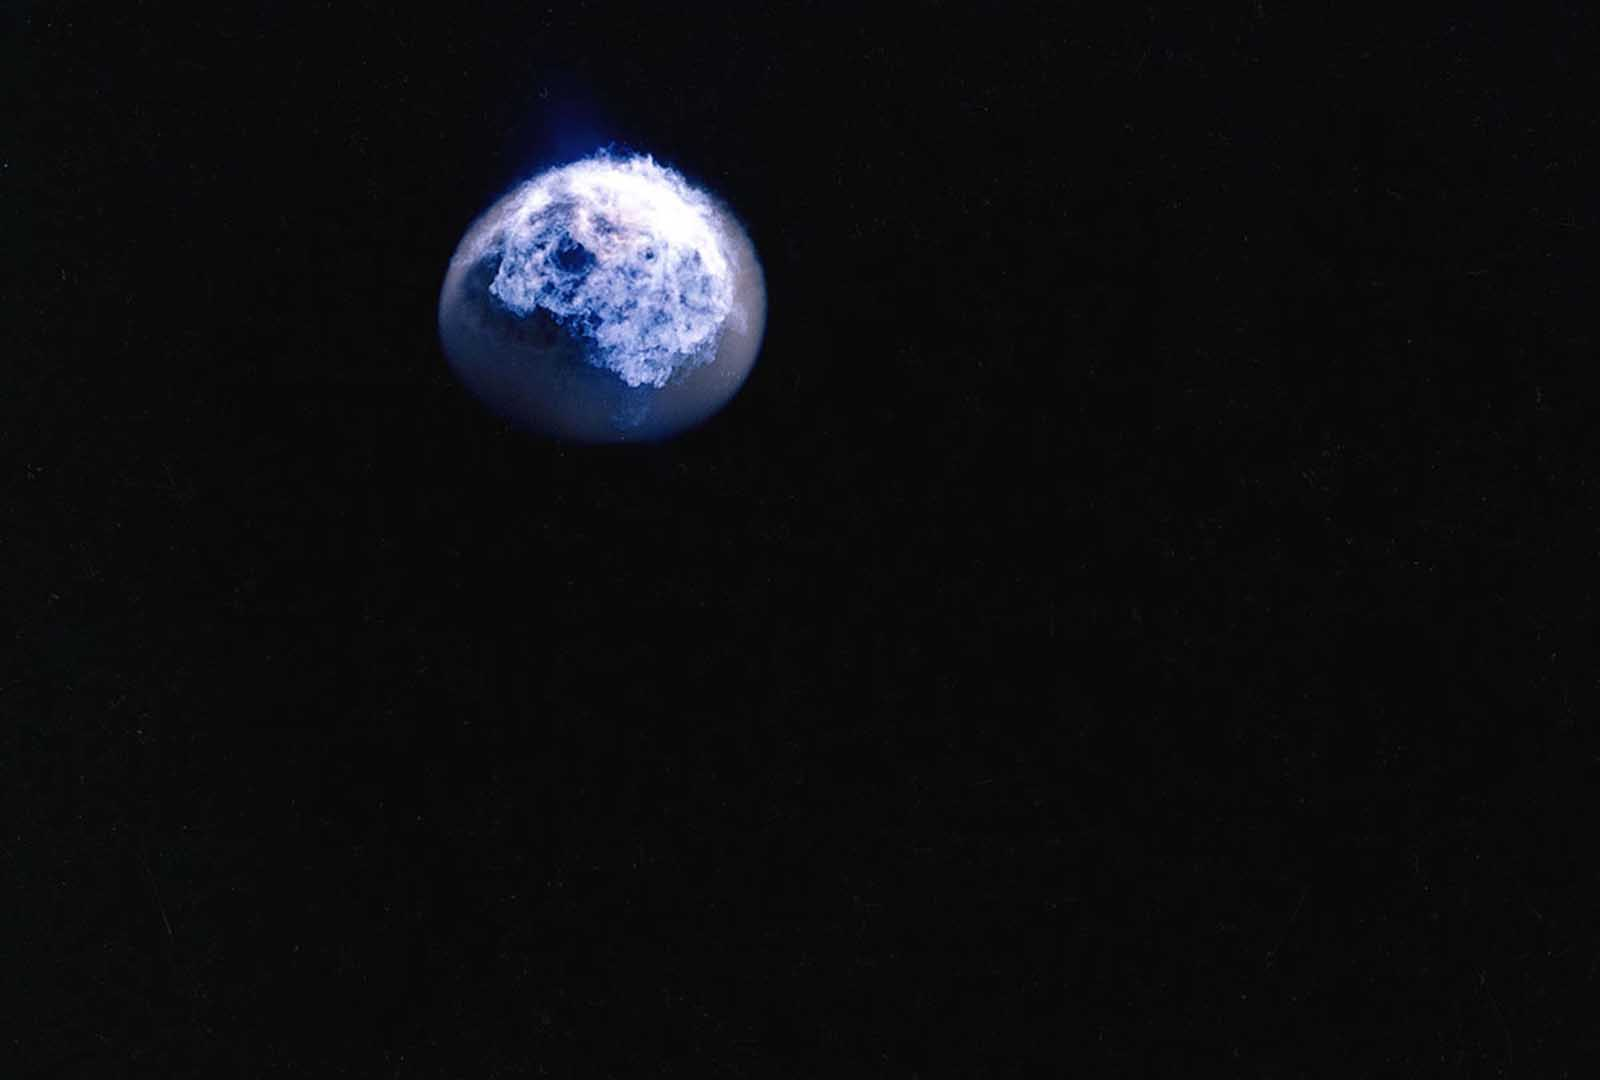 Shot during Operation Fishbowl Bluegill, this is an image of an explosion of a 400-kiloton nuclear bomb taking place in the atmosphere, 30 miles above the Pacific, as viewed from above in October 1962.